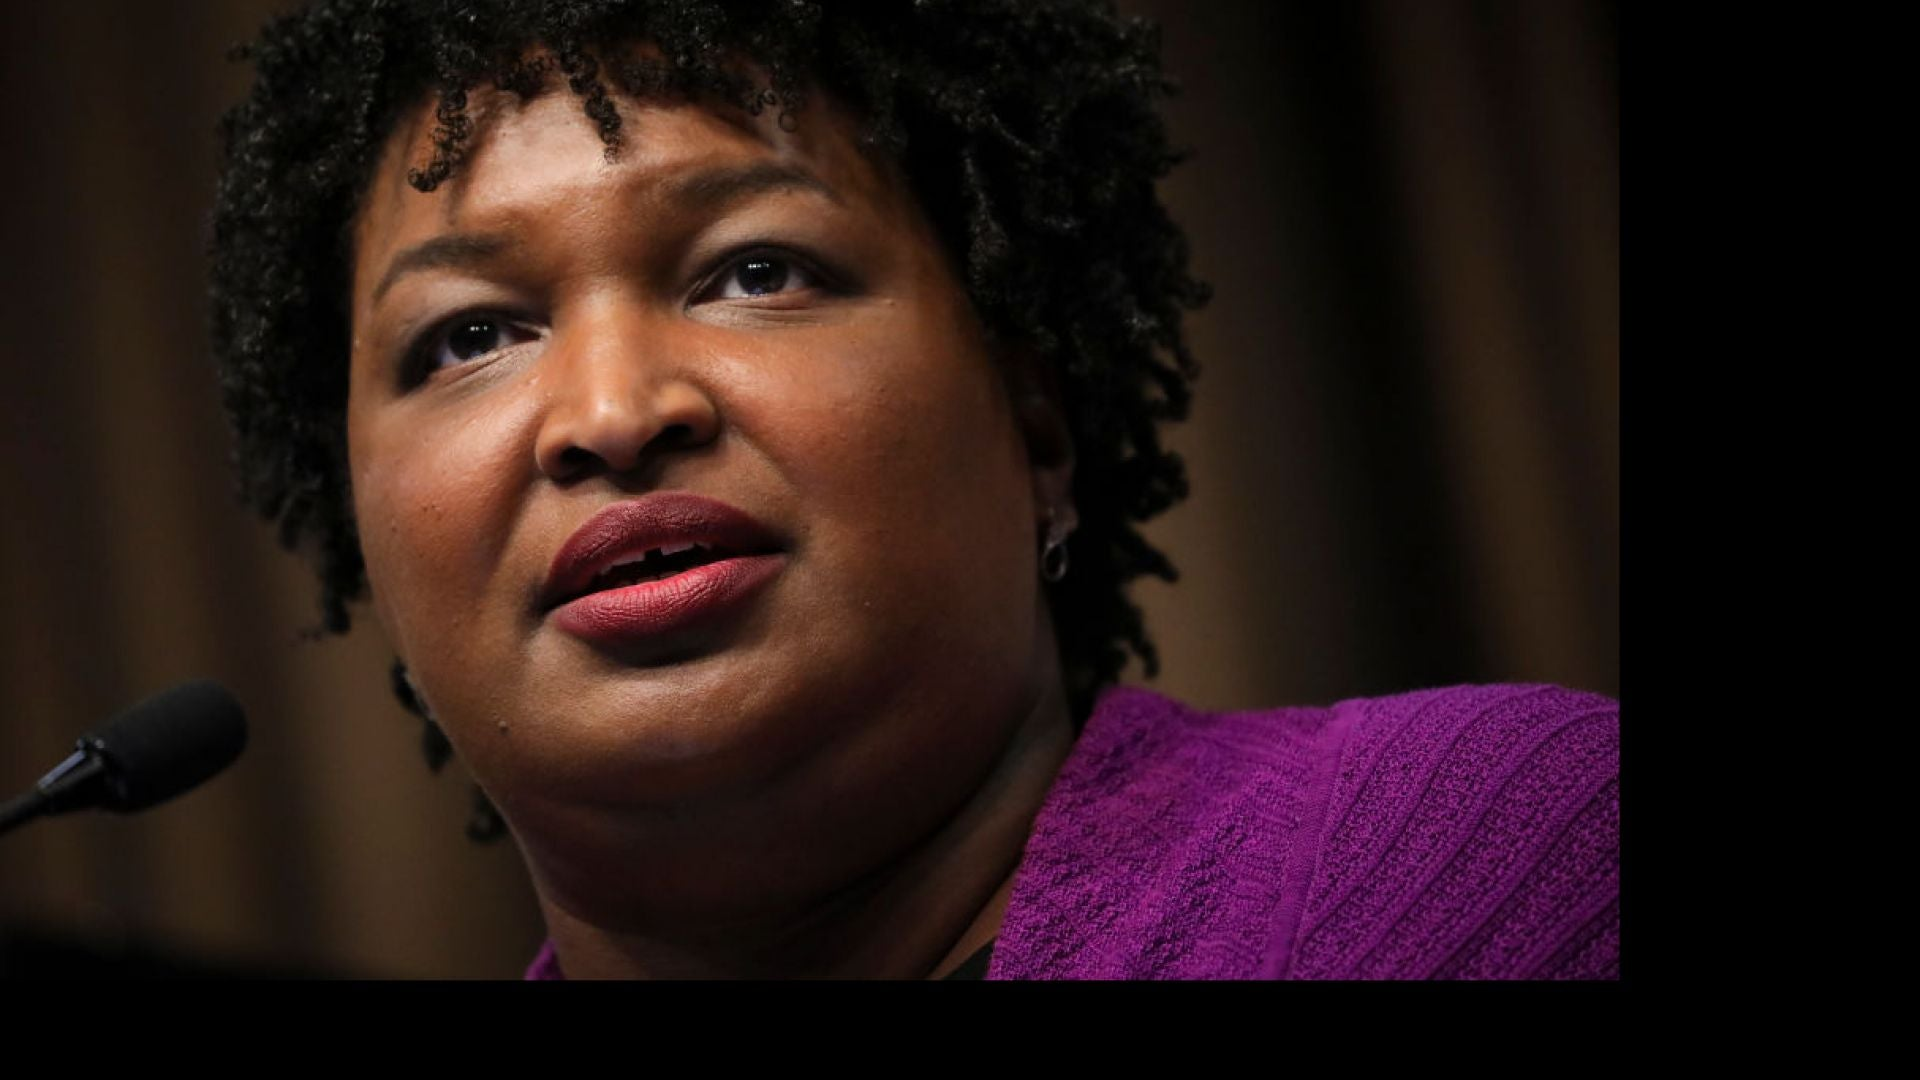 Stacey Abrams Says Democrats Will Win In 2020 'By Telling Our Story,' Not Running Against Trump